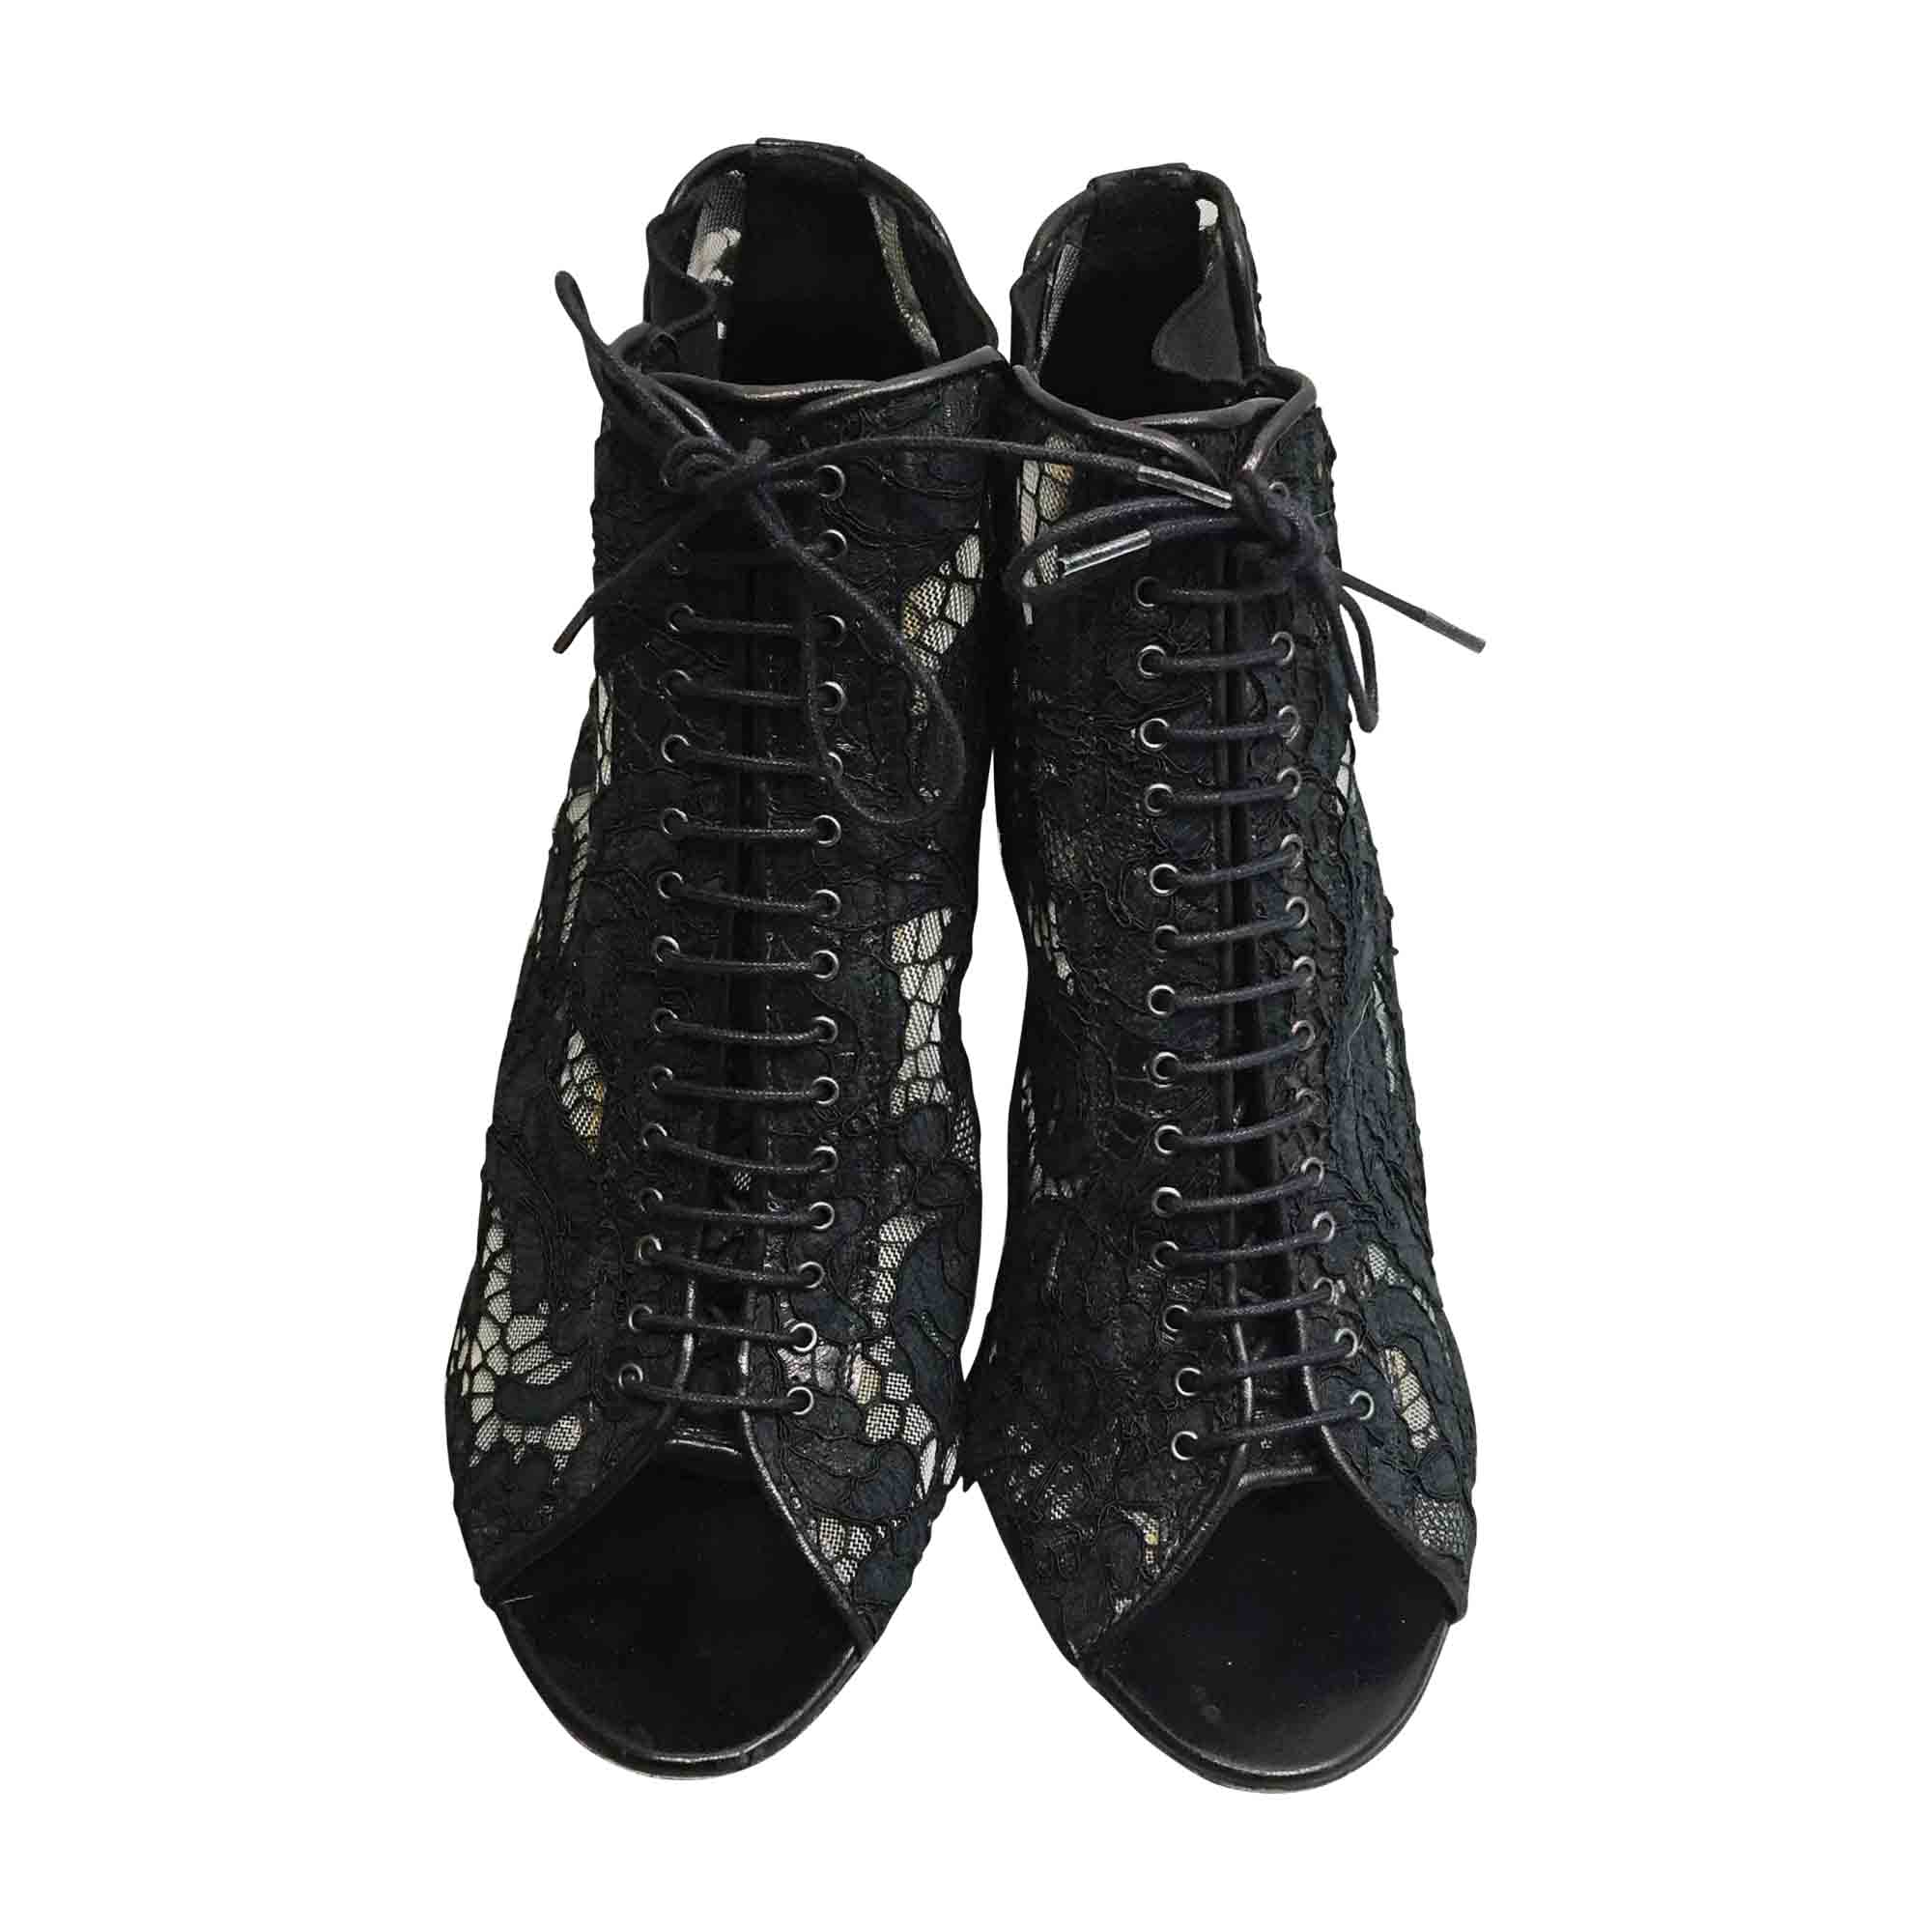 Bottines & low boots à talons GIVENCHY Noir